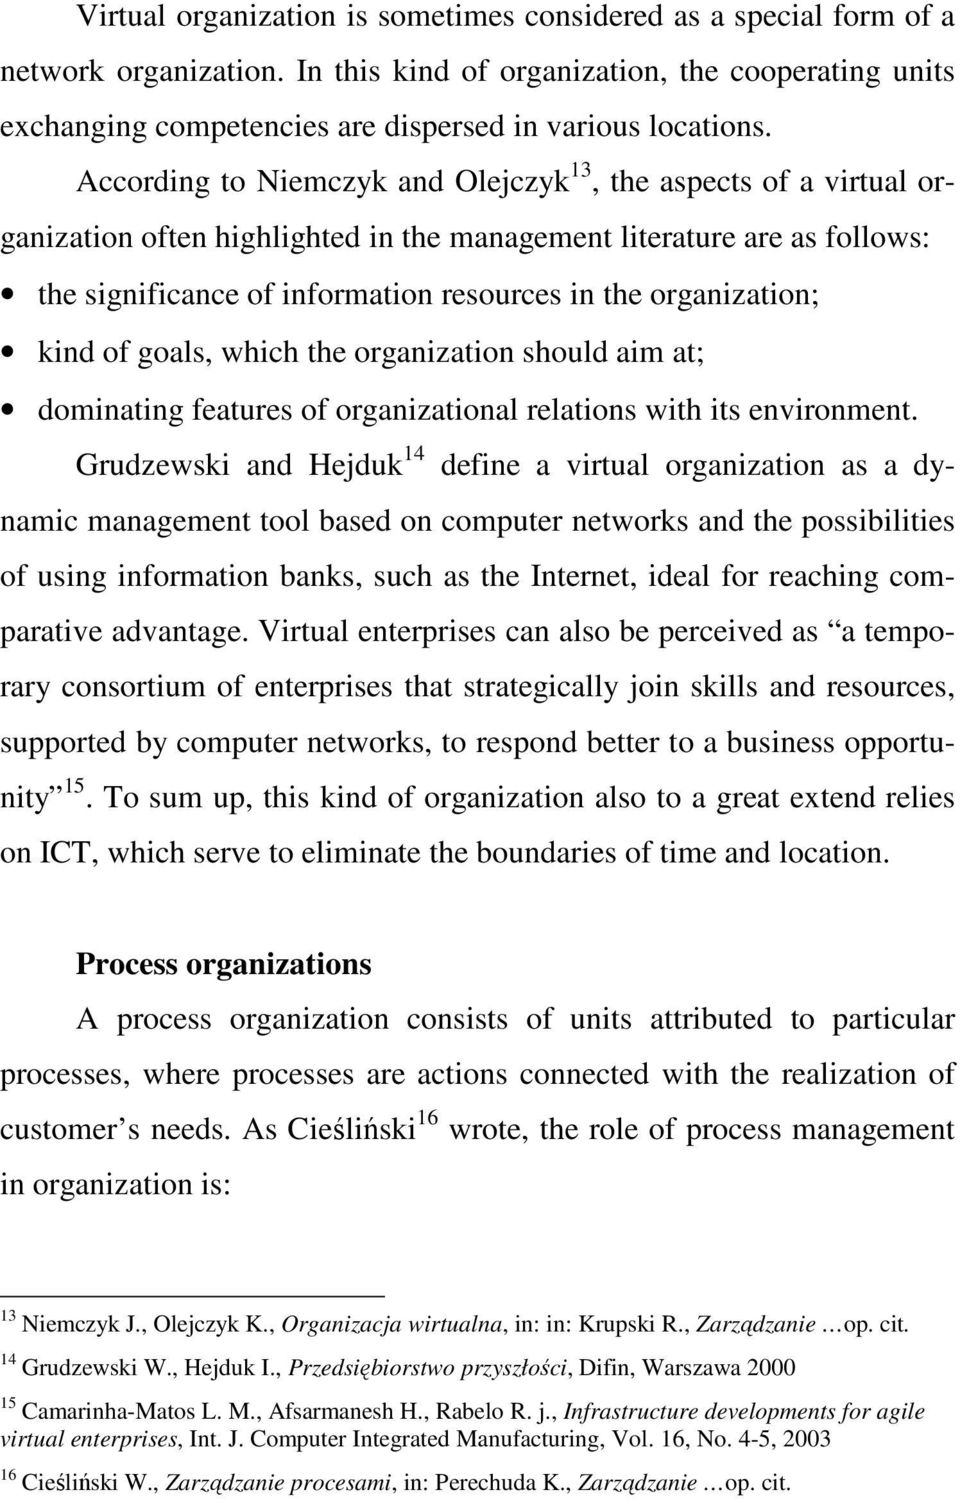 According to Niemczyk and Olejczyk 13, the aspects of a virtual organization often highlighted in the management literature are as follows: the significance of information resources in the